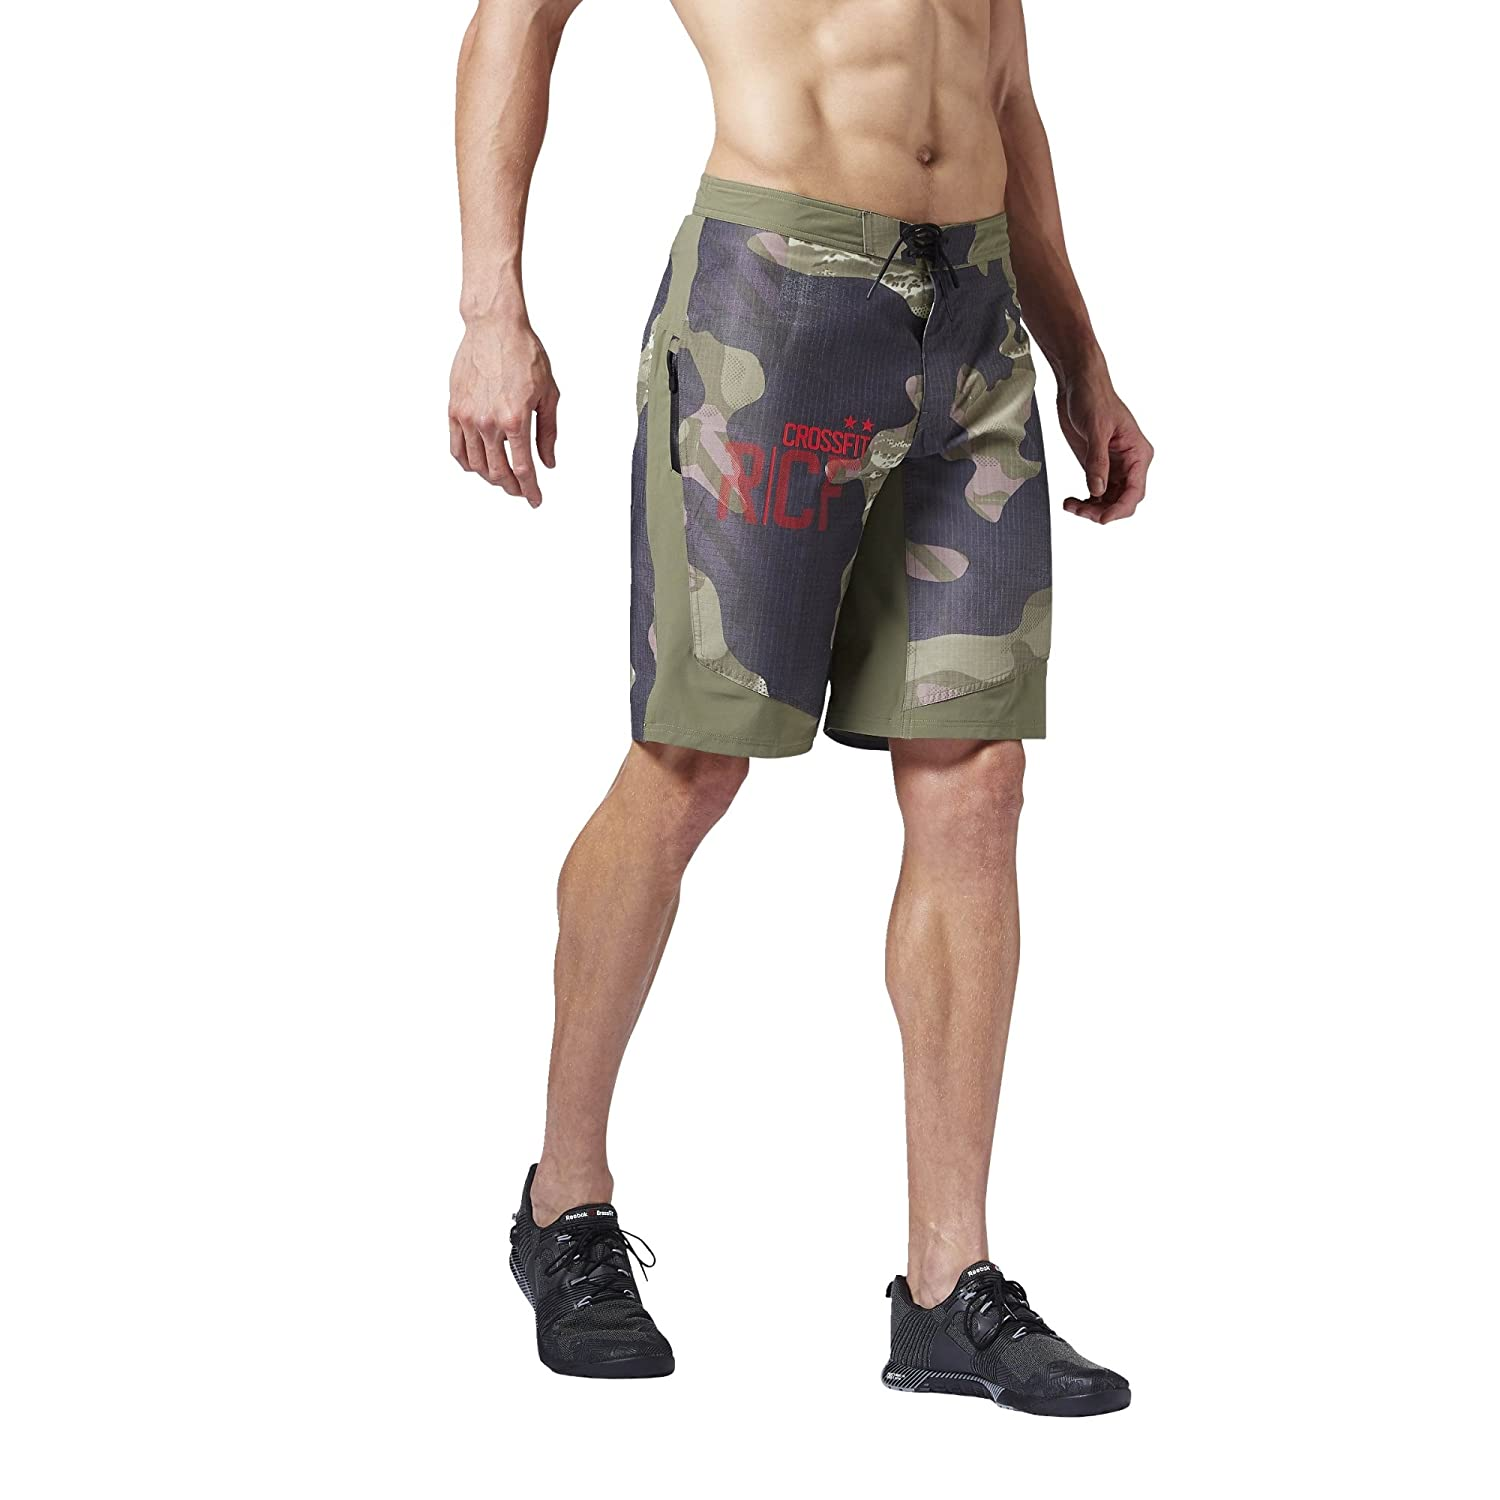 Reebok Herren Crossfit Super Nasty Tactical Camo Surfer/Board-shorts